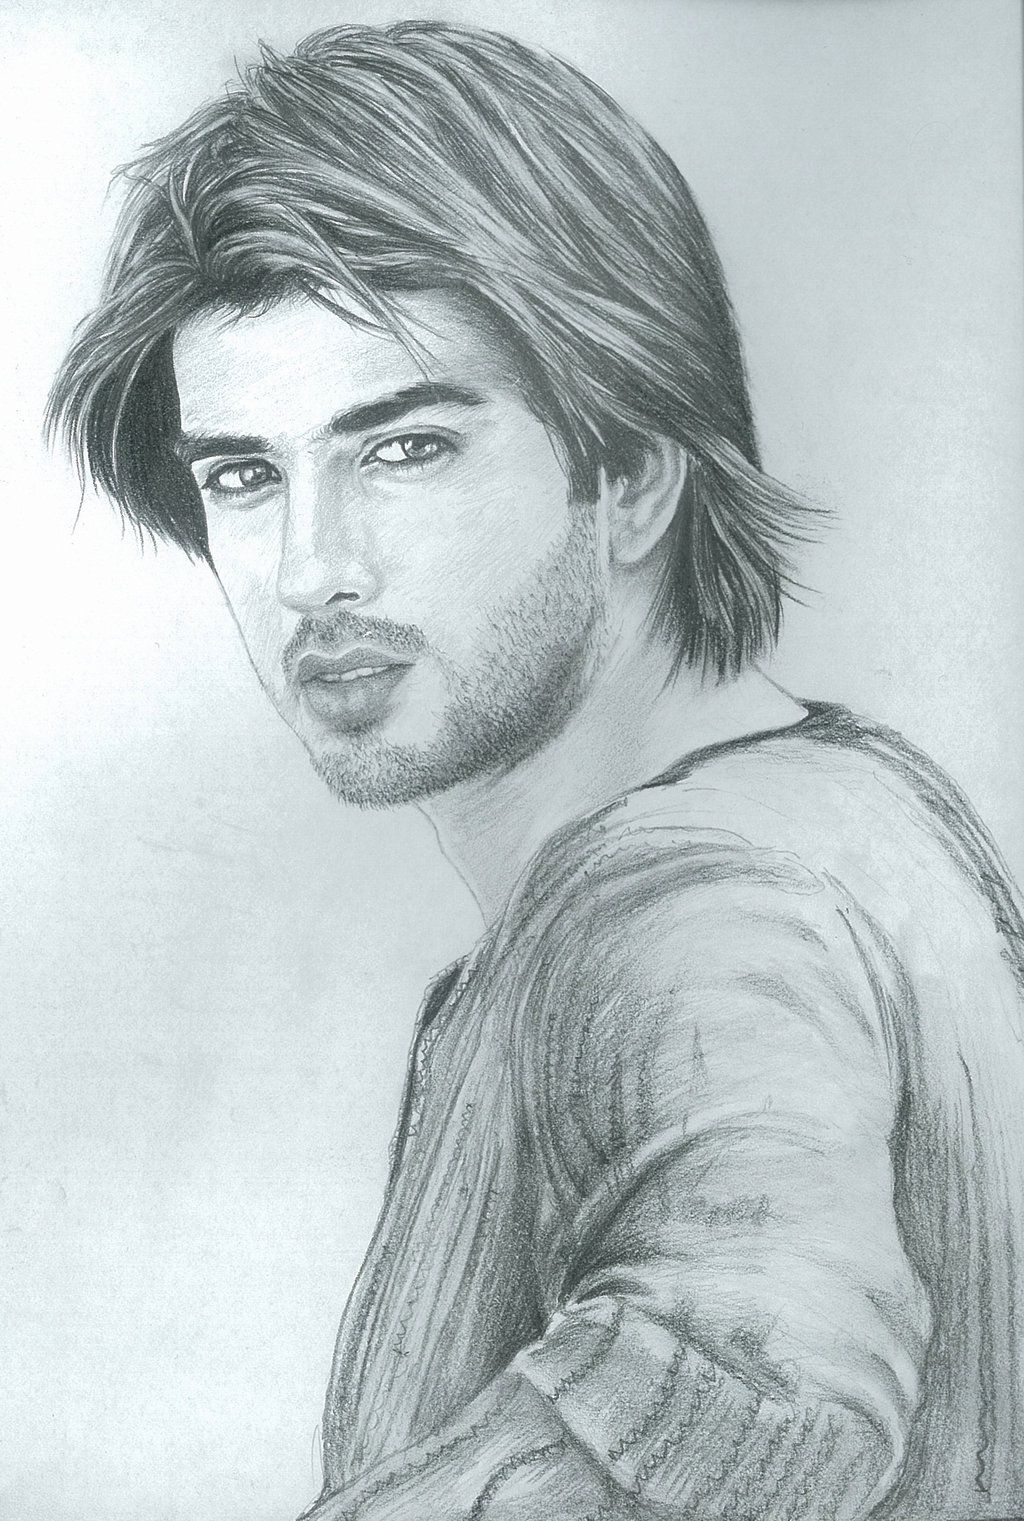 Best sketch of imran abbas cool sketches sketch art create a board kareena